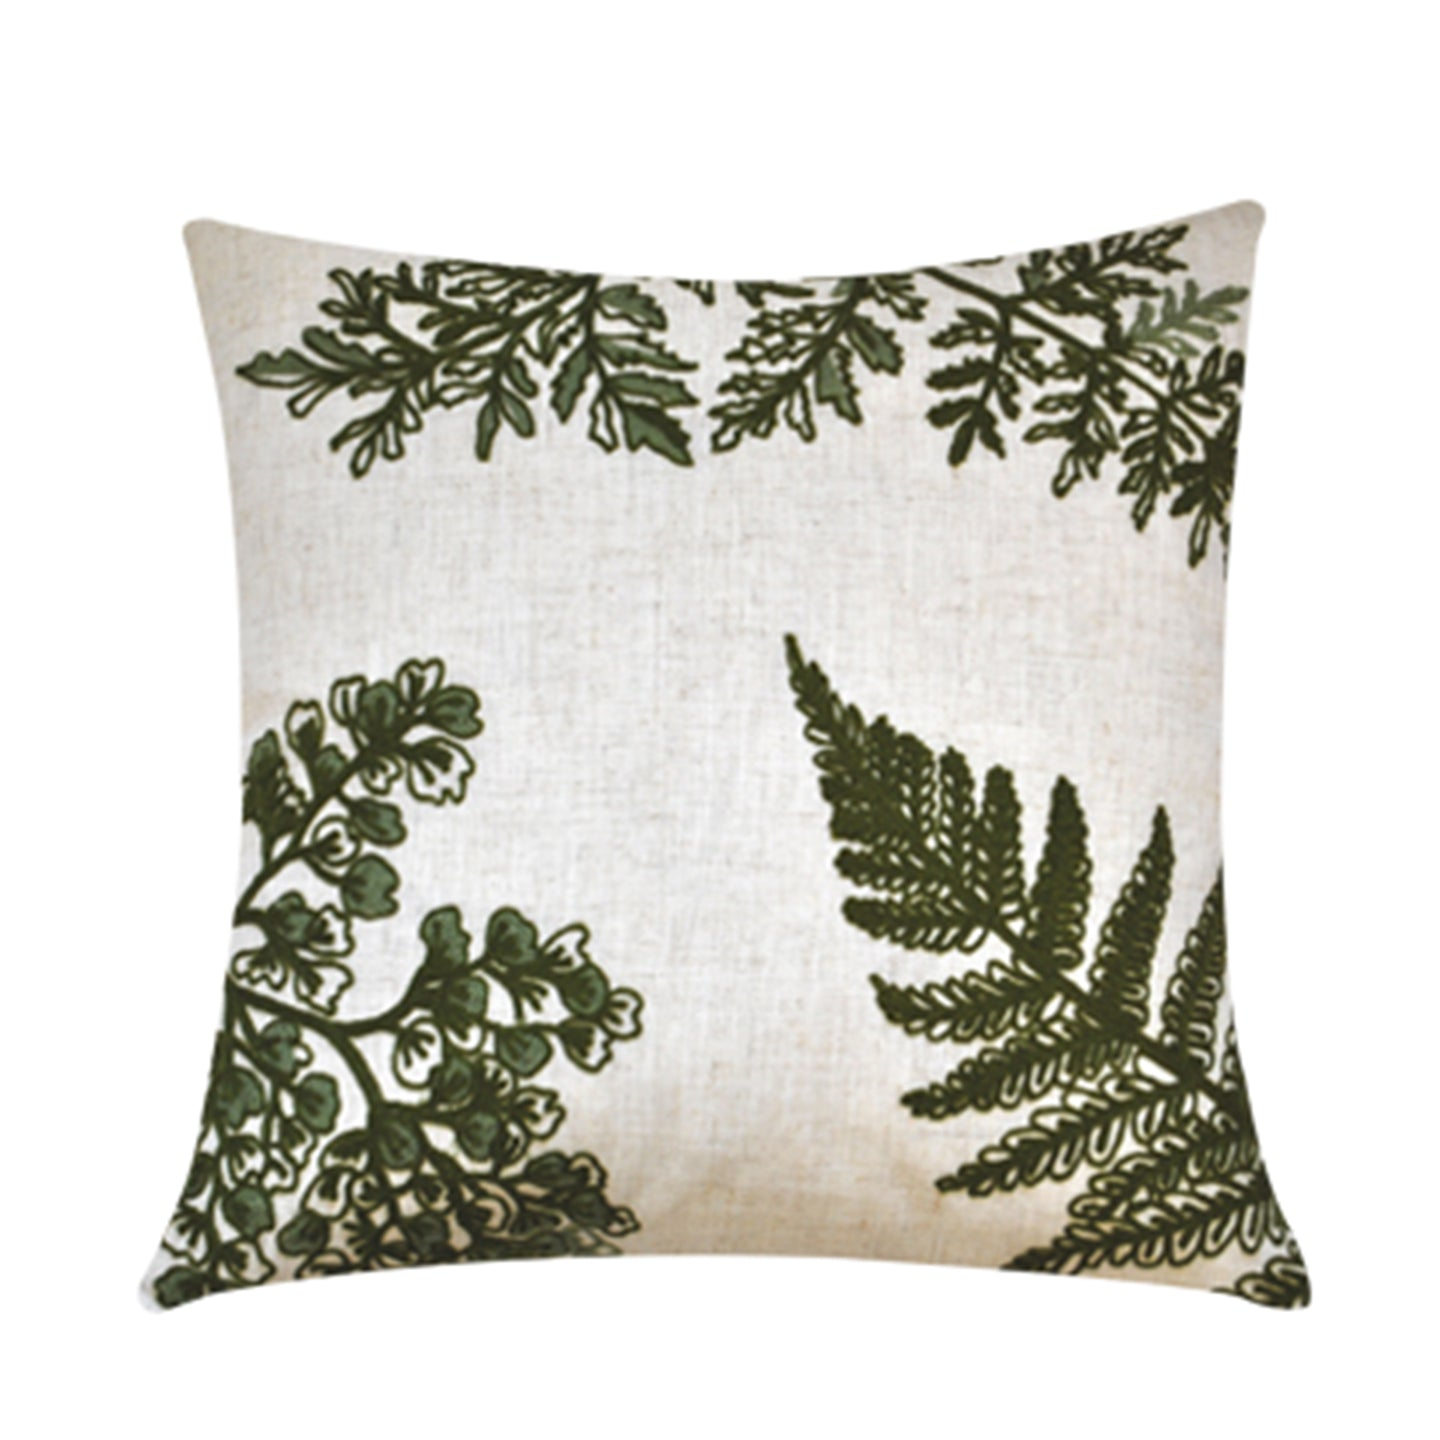 FERN FOREST PILLOW